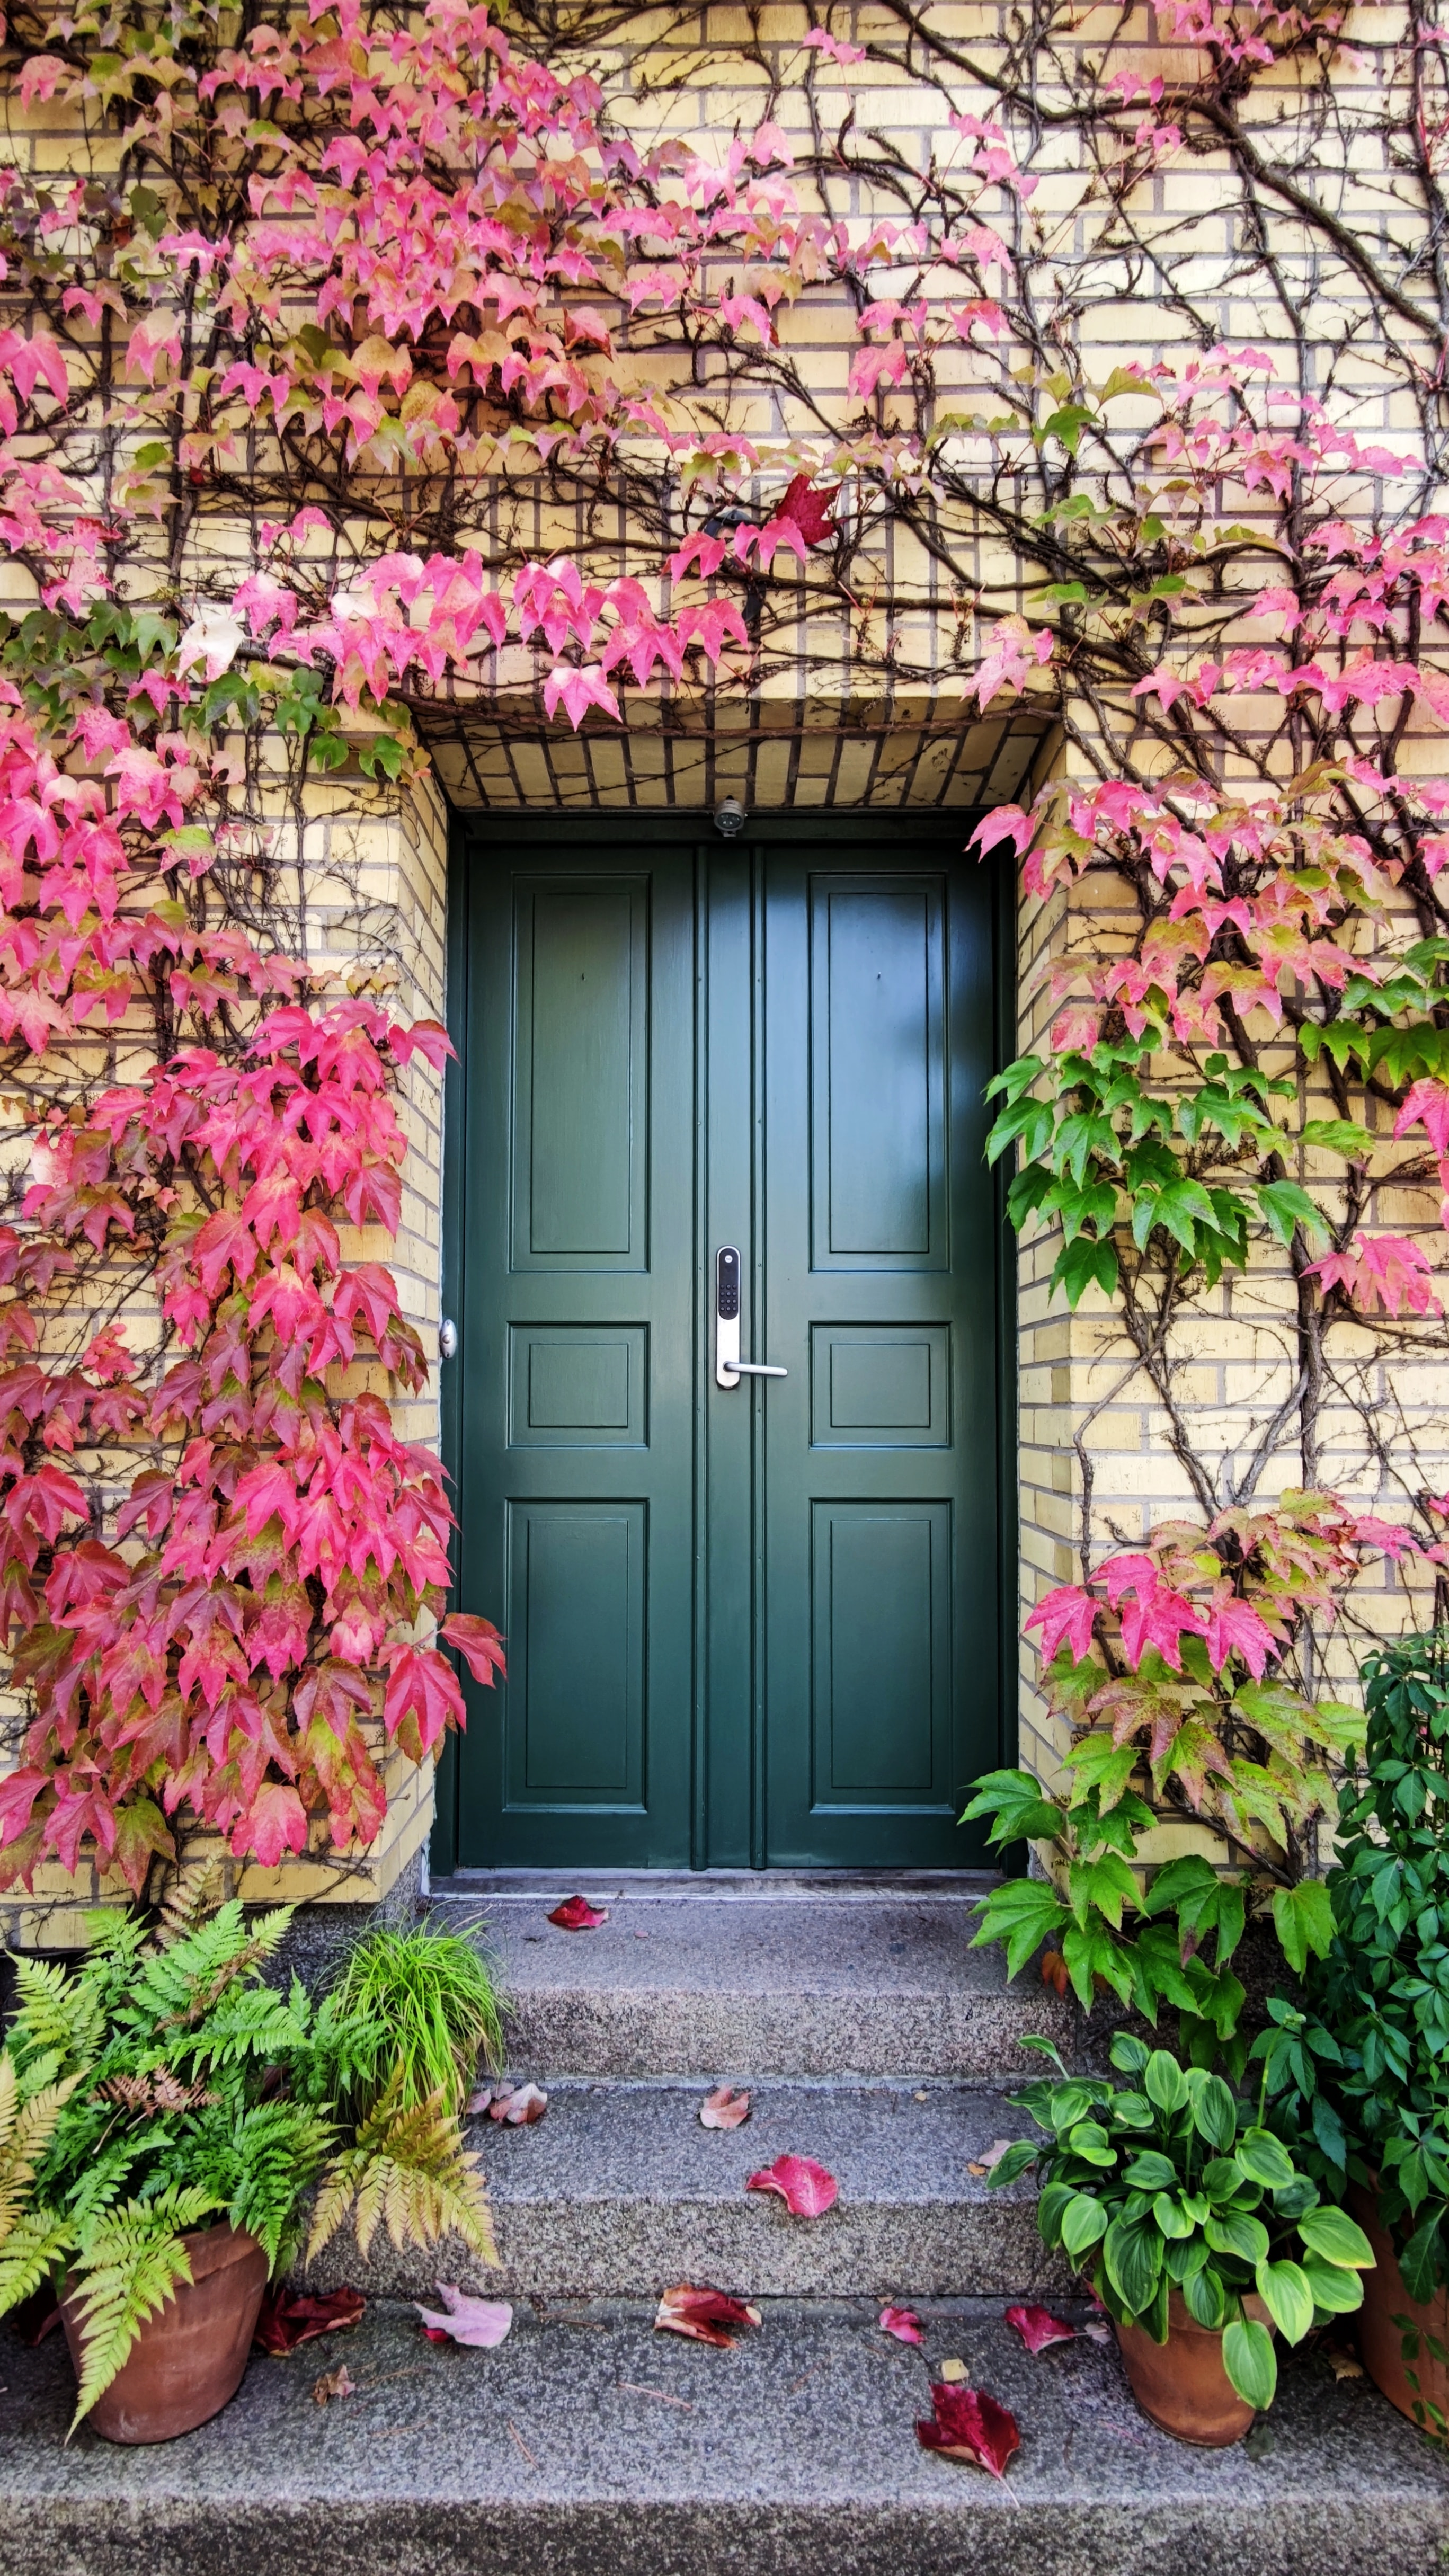 73746 download wallpaper Plants, Autumn, Miscellanea, Miscellaneous, Stairs, Ladder, Door screensavers and pictures for free